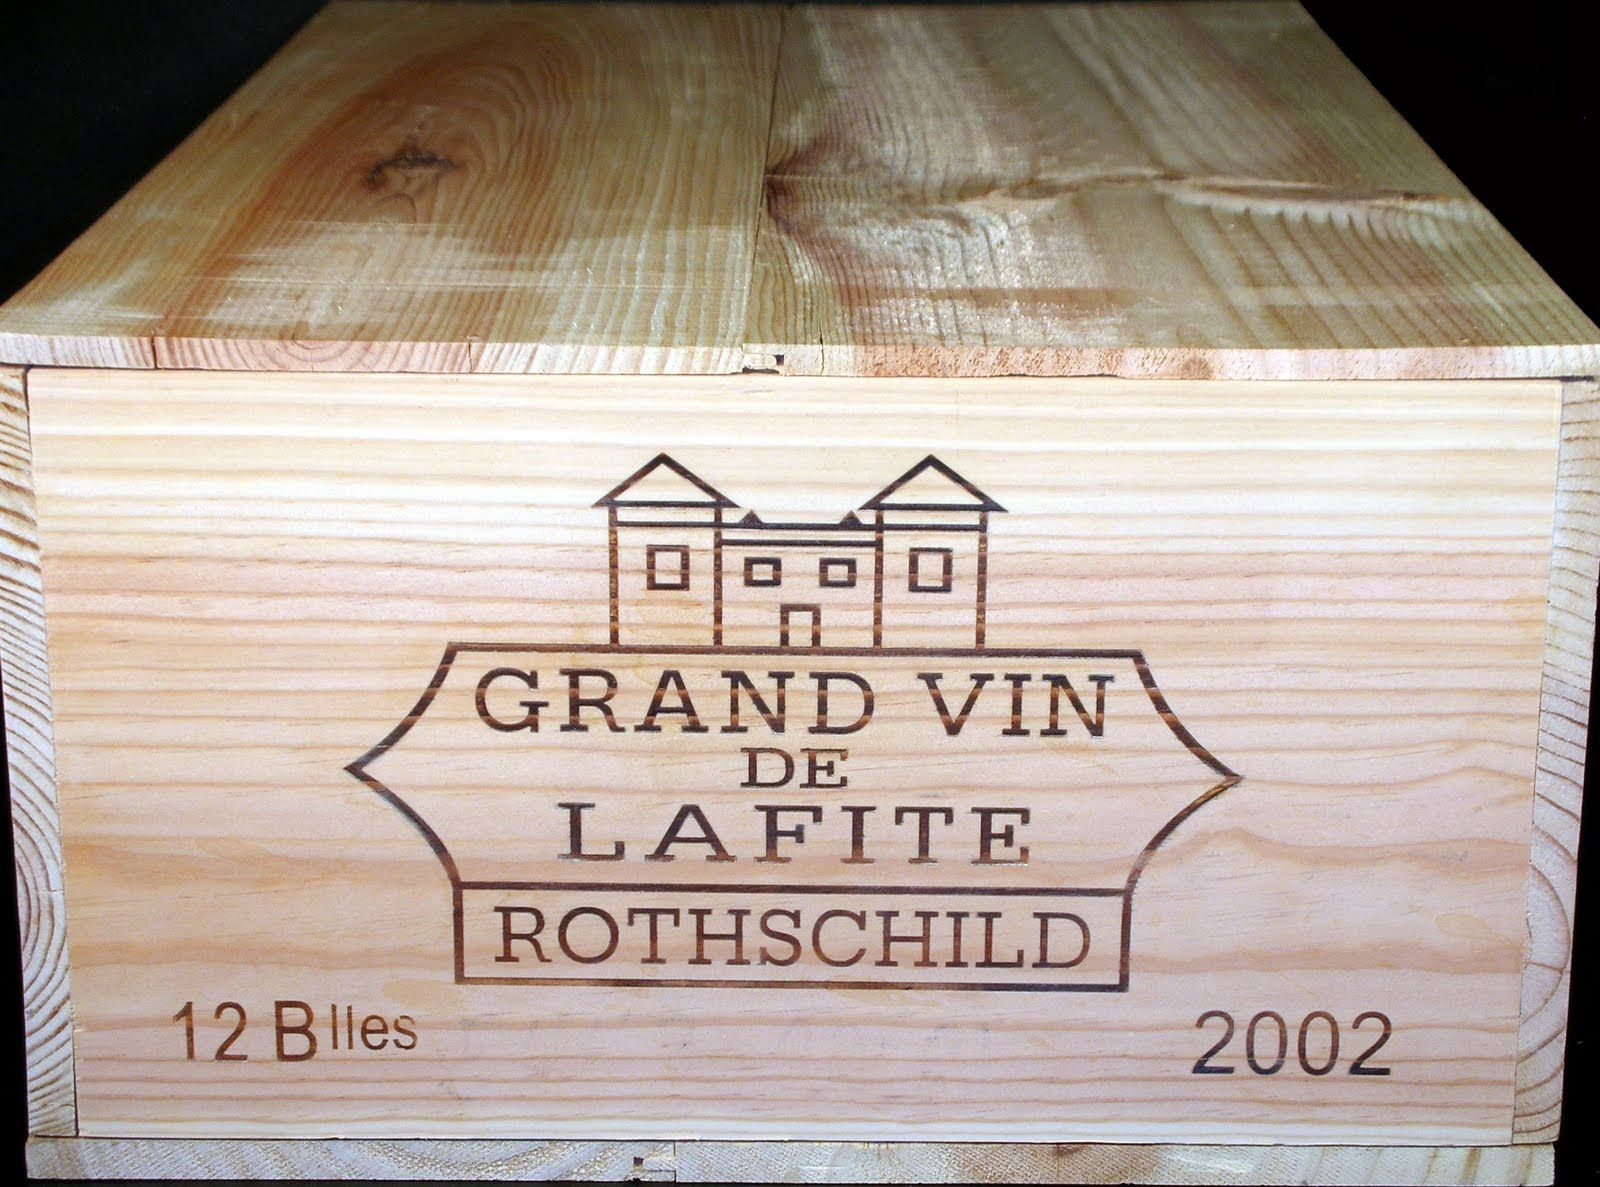 Design Wine Crates 14 best wine crates images on pinterest chateau lafite rothschild first growth crate made in france